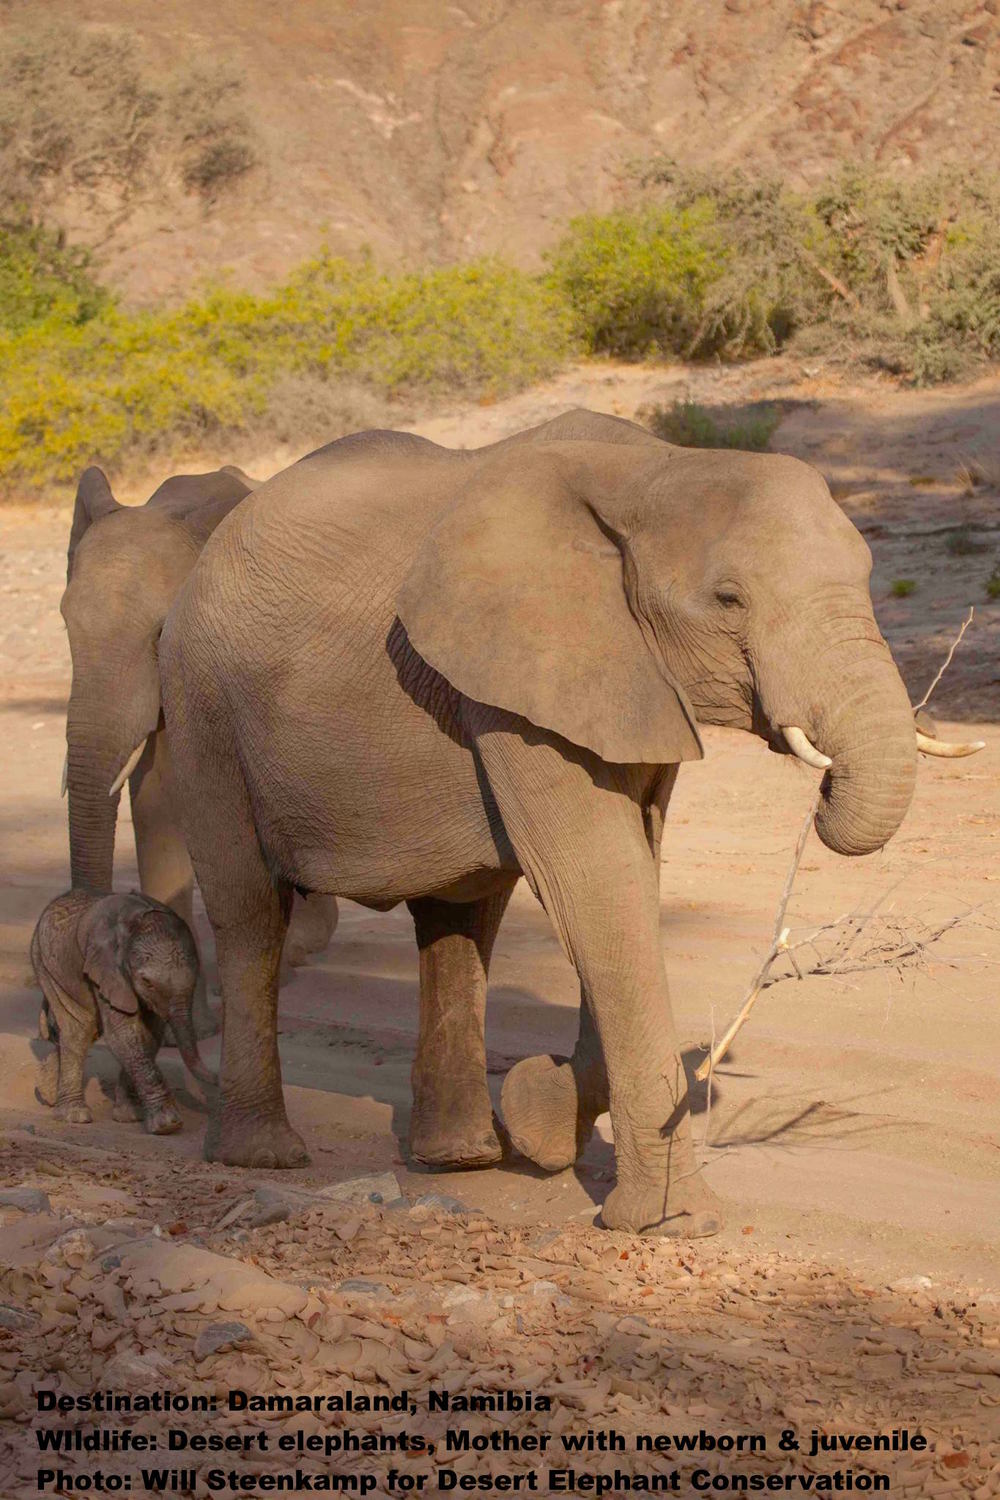 This desert elephant baby will drink far less, grow taller, and migrate further (usually at night) than its savanna cousins. It will learn to negotiate loose sand, and sharp, rocky inclines and develop a taste for myrrh - if it survives at all. Image: Dr. Laura Brown for Desert Elephant Conservation.